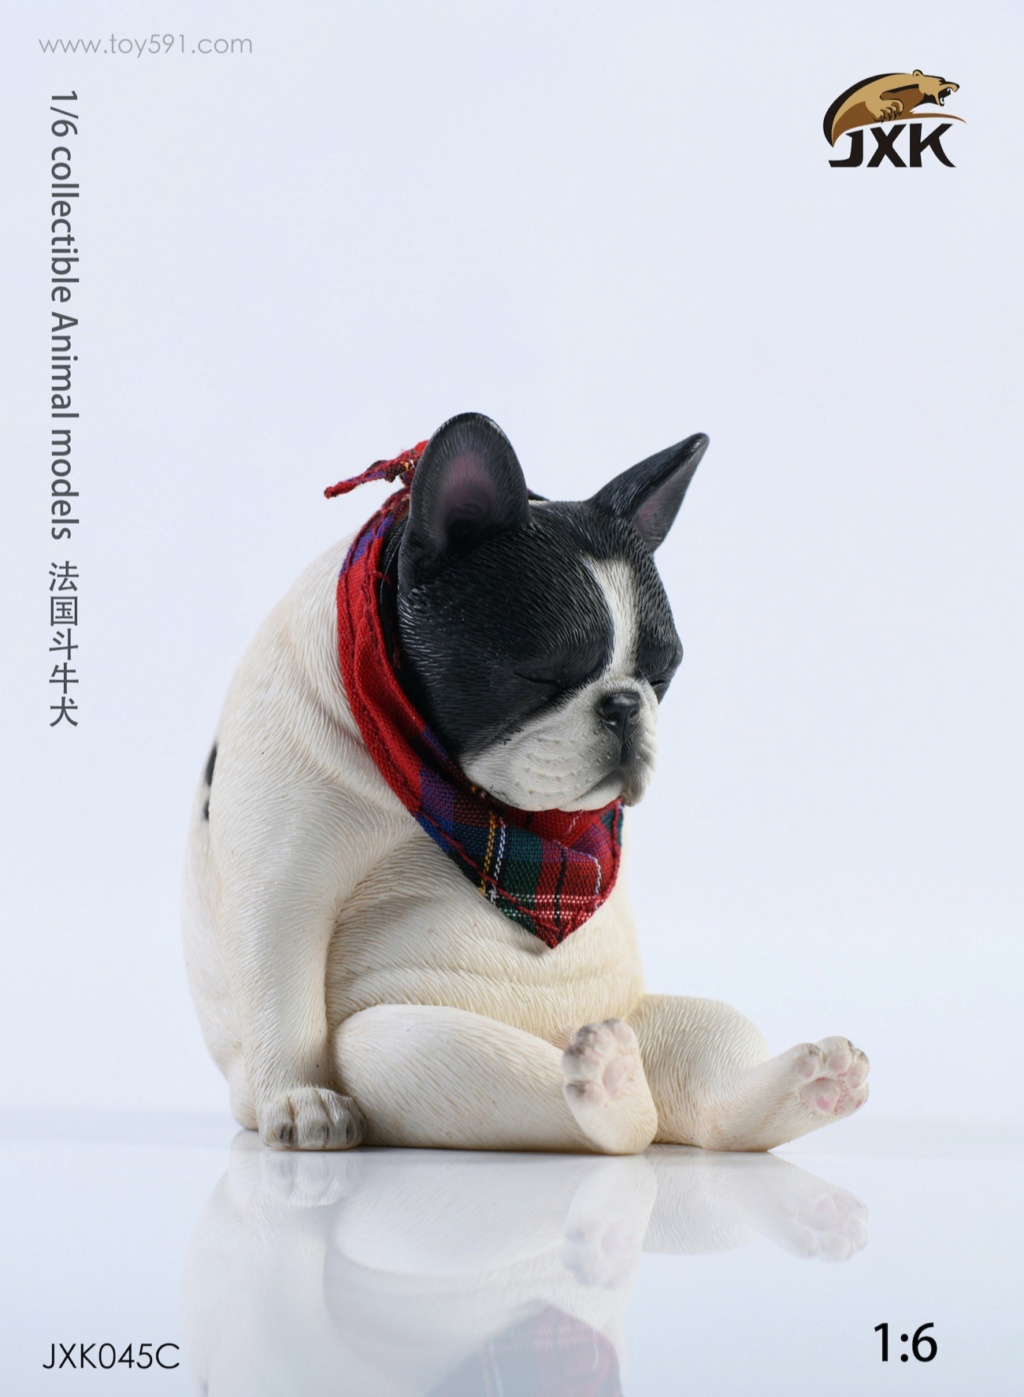 Dog - NEW PRODUCT: JXK 1/6 Decadent Dog JXK045 French Bulldog + Scarf 727aa310